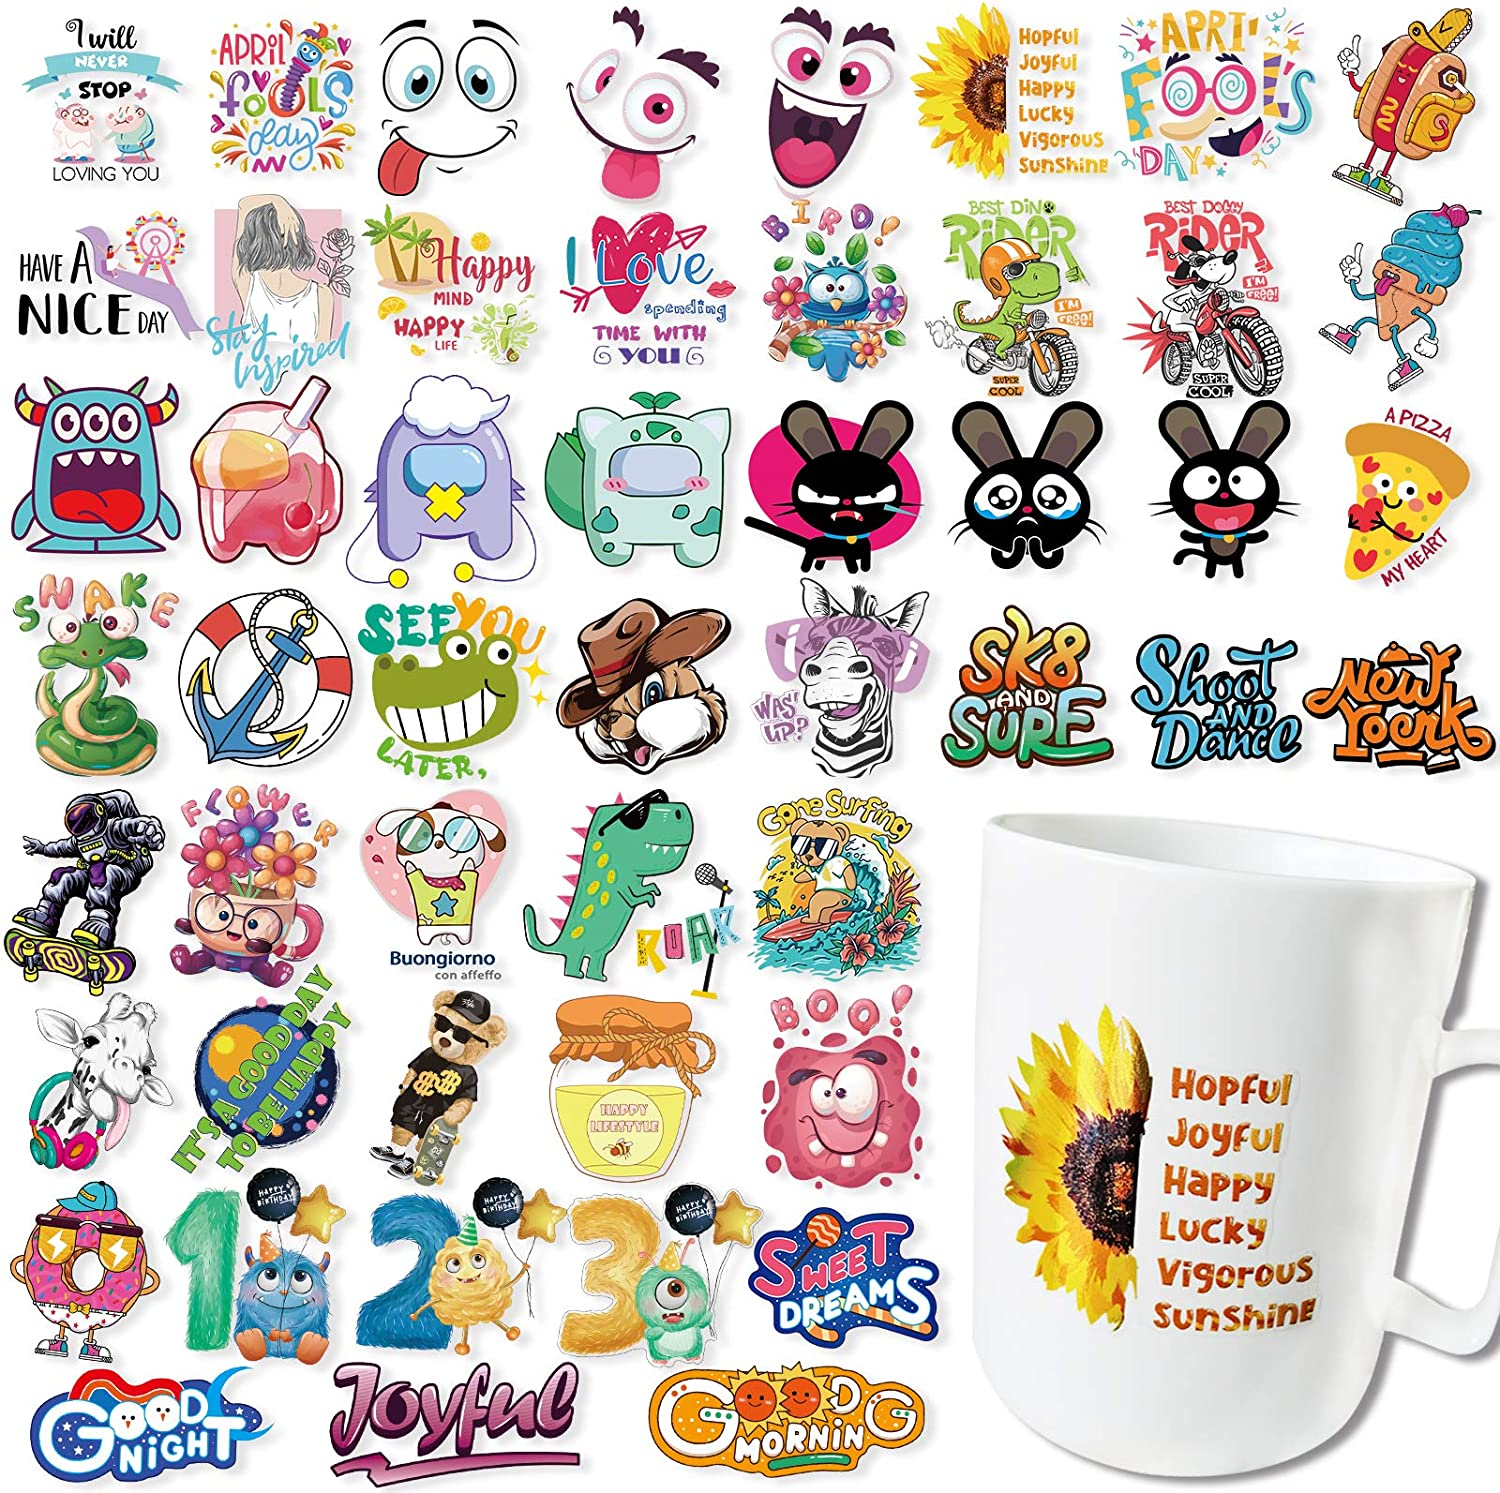 150pcs Clear Stickers Pack, 50 Transparent Stickers for Laptop + 100pcs Mini Stickers, Cute Small Stickers for Water Bottles, Reflective Trendy Decals for Scrapbook, Tenns, Adults